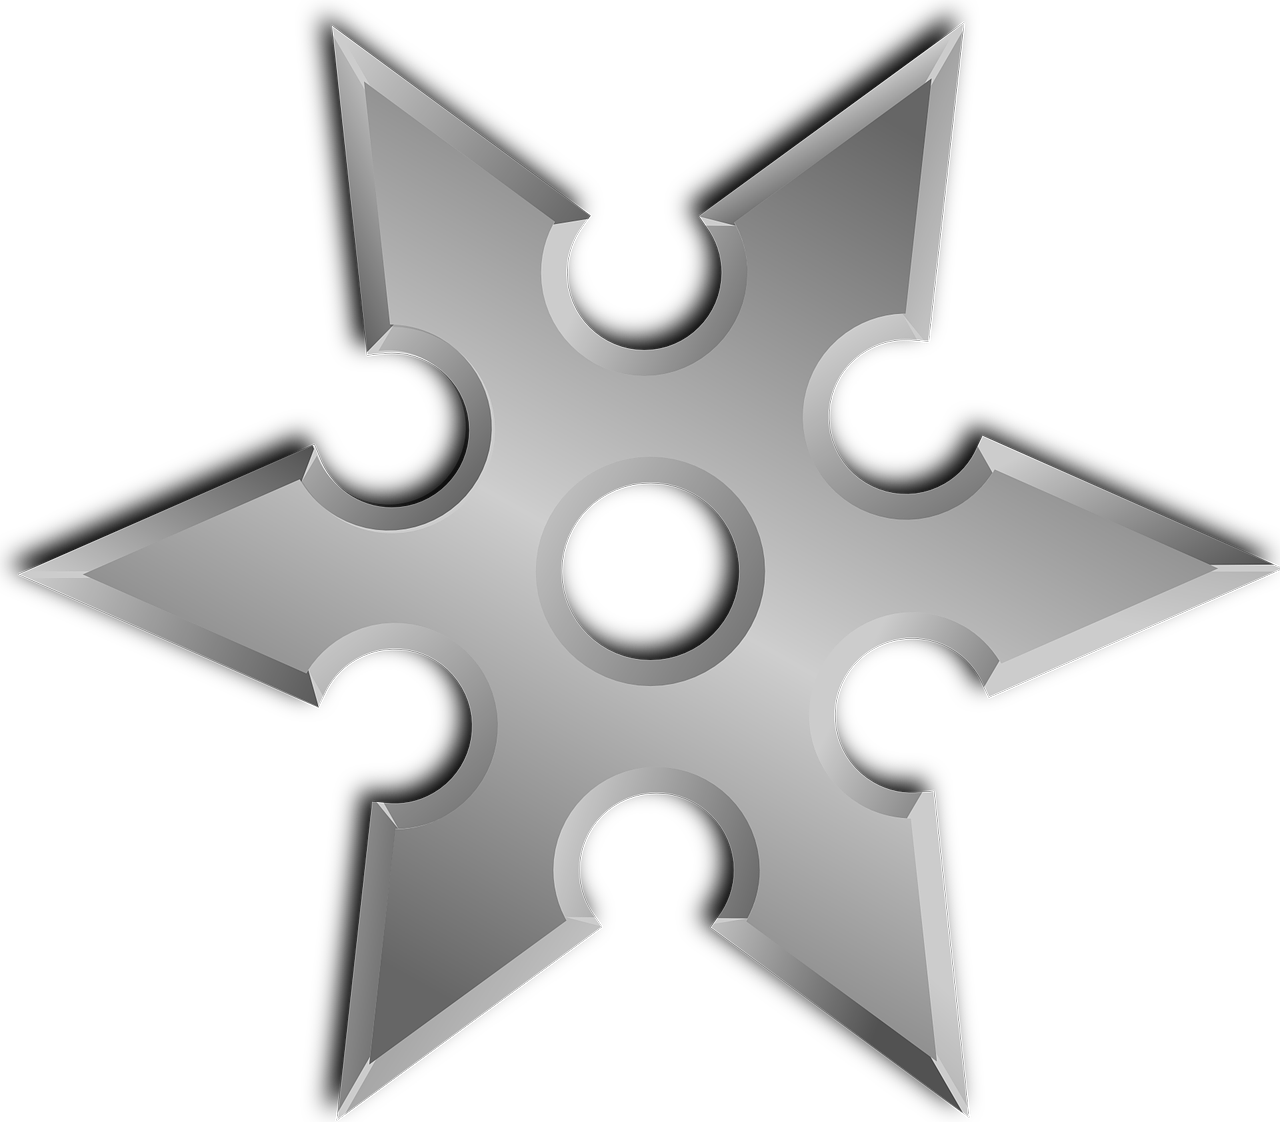 Free Image On Pixabay Throwing Star Weapon Ninja Star Shuriken Ninja Star Throwing Stars